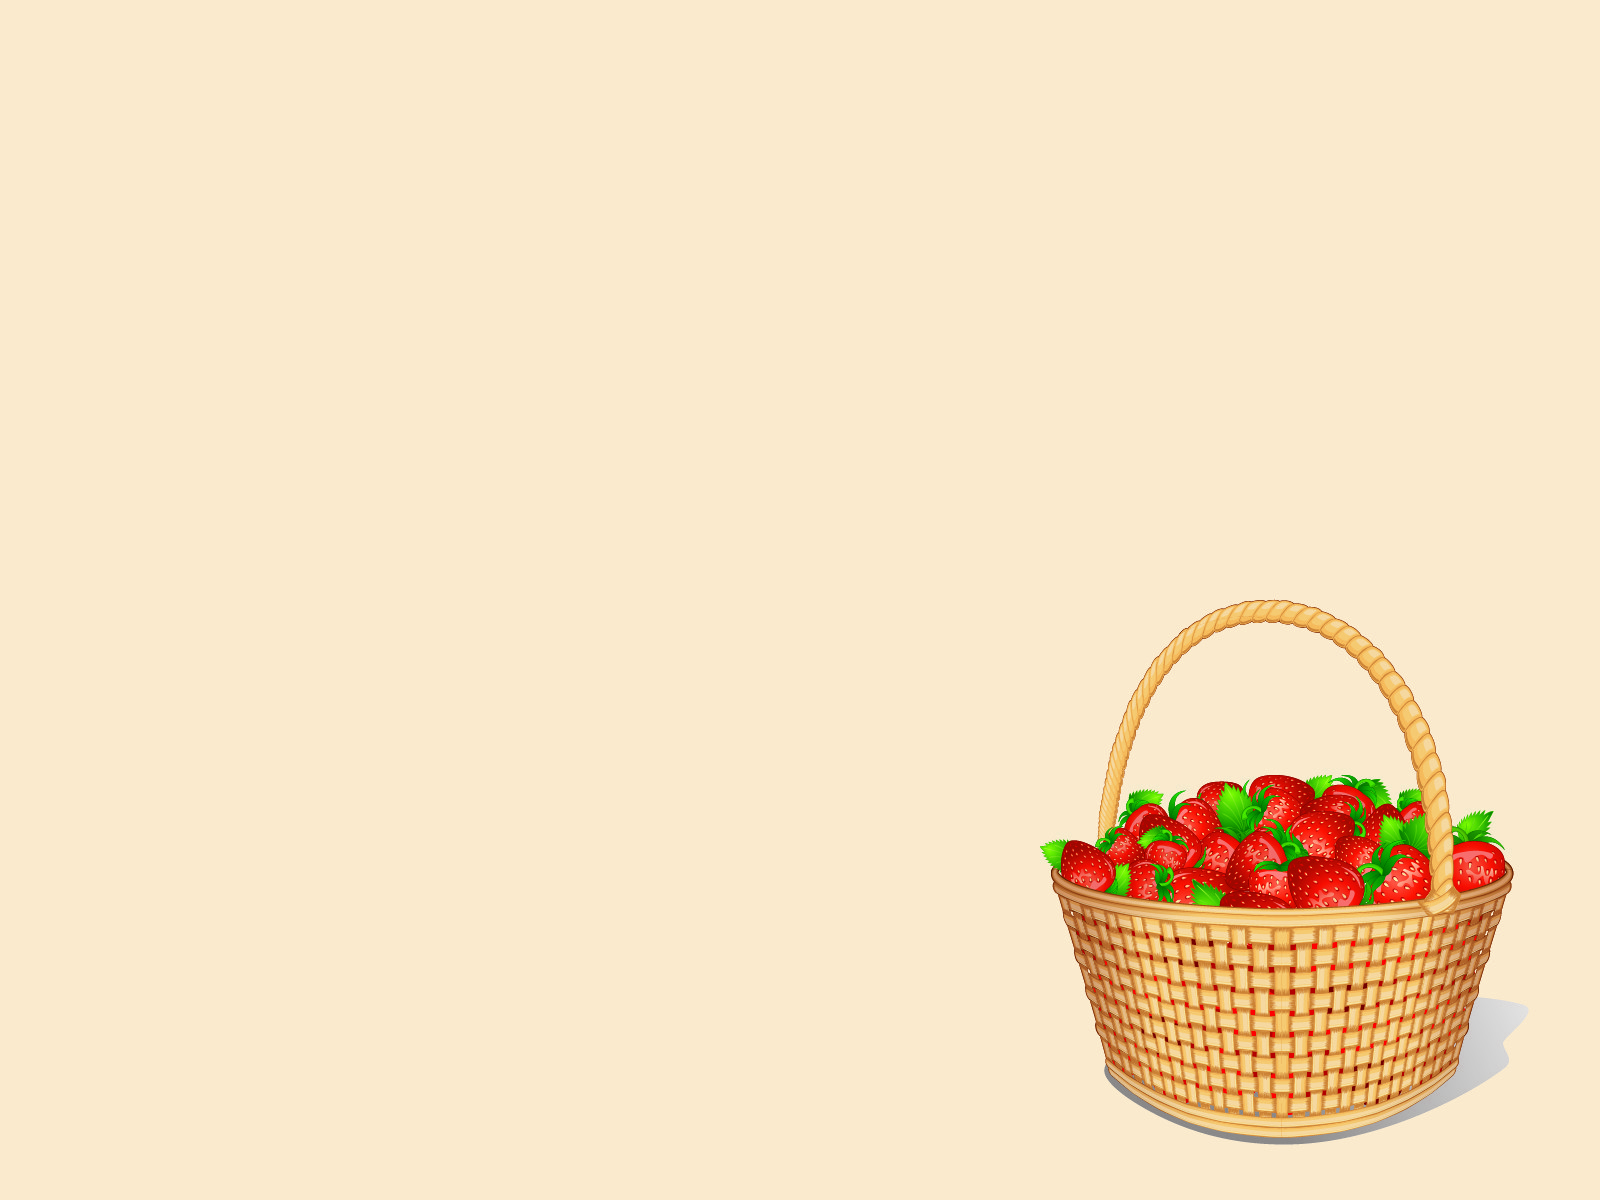 Berry PPT Backgrounds